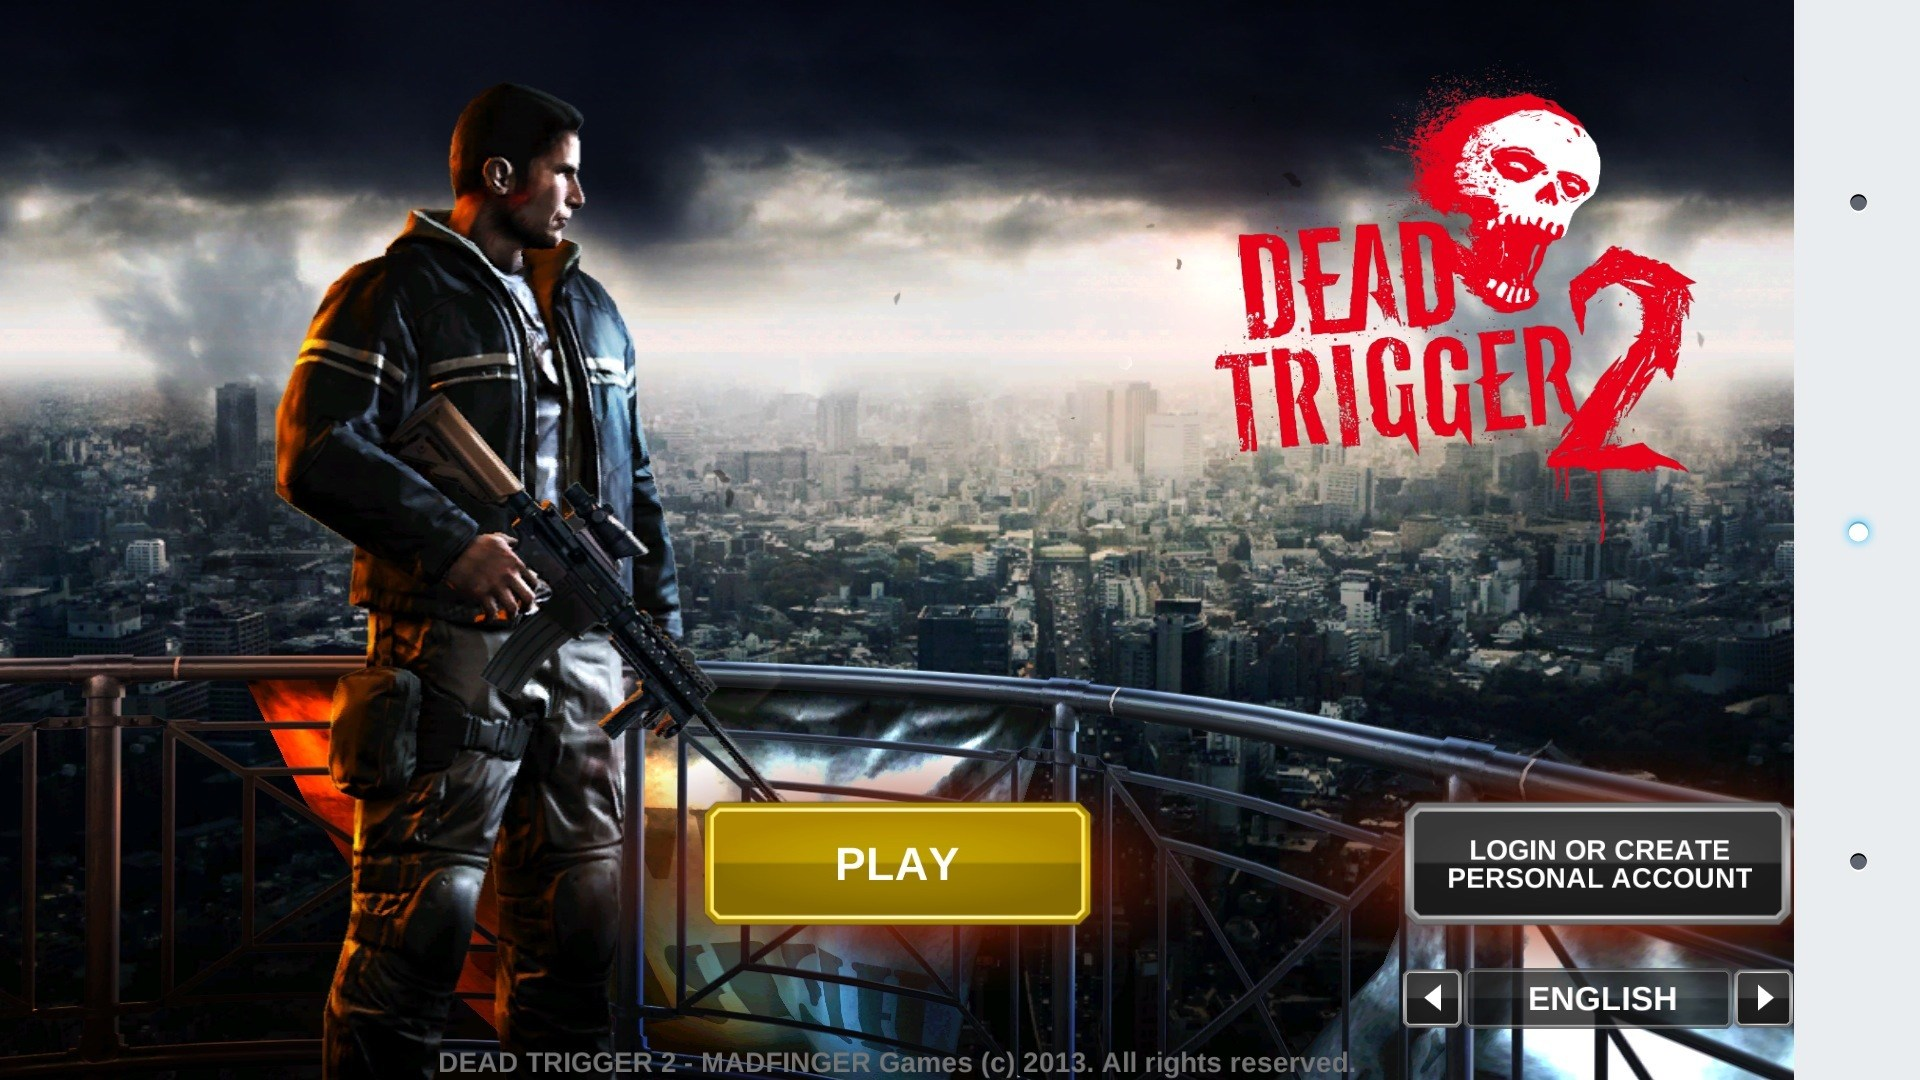 Phone Download Games Android Phone how to download games on an android phone images guru dead trigger for